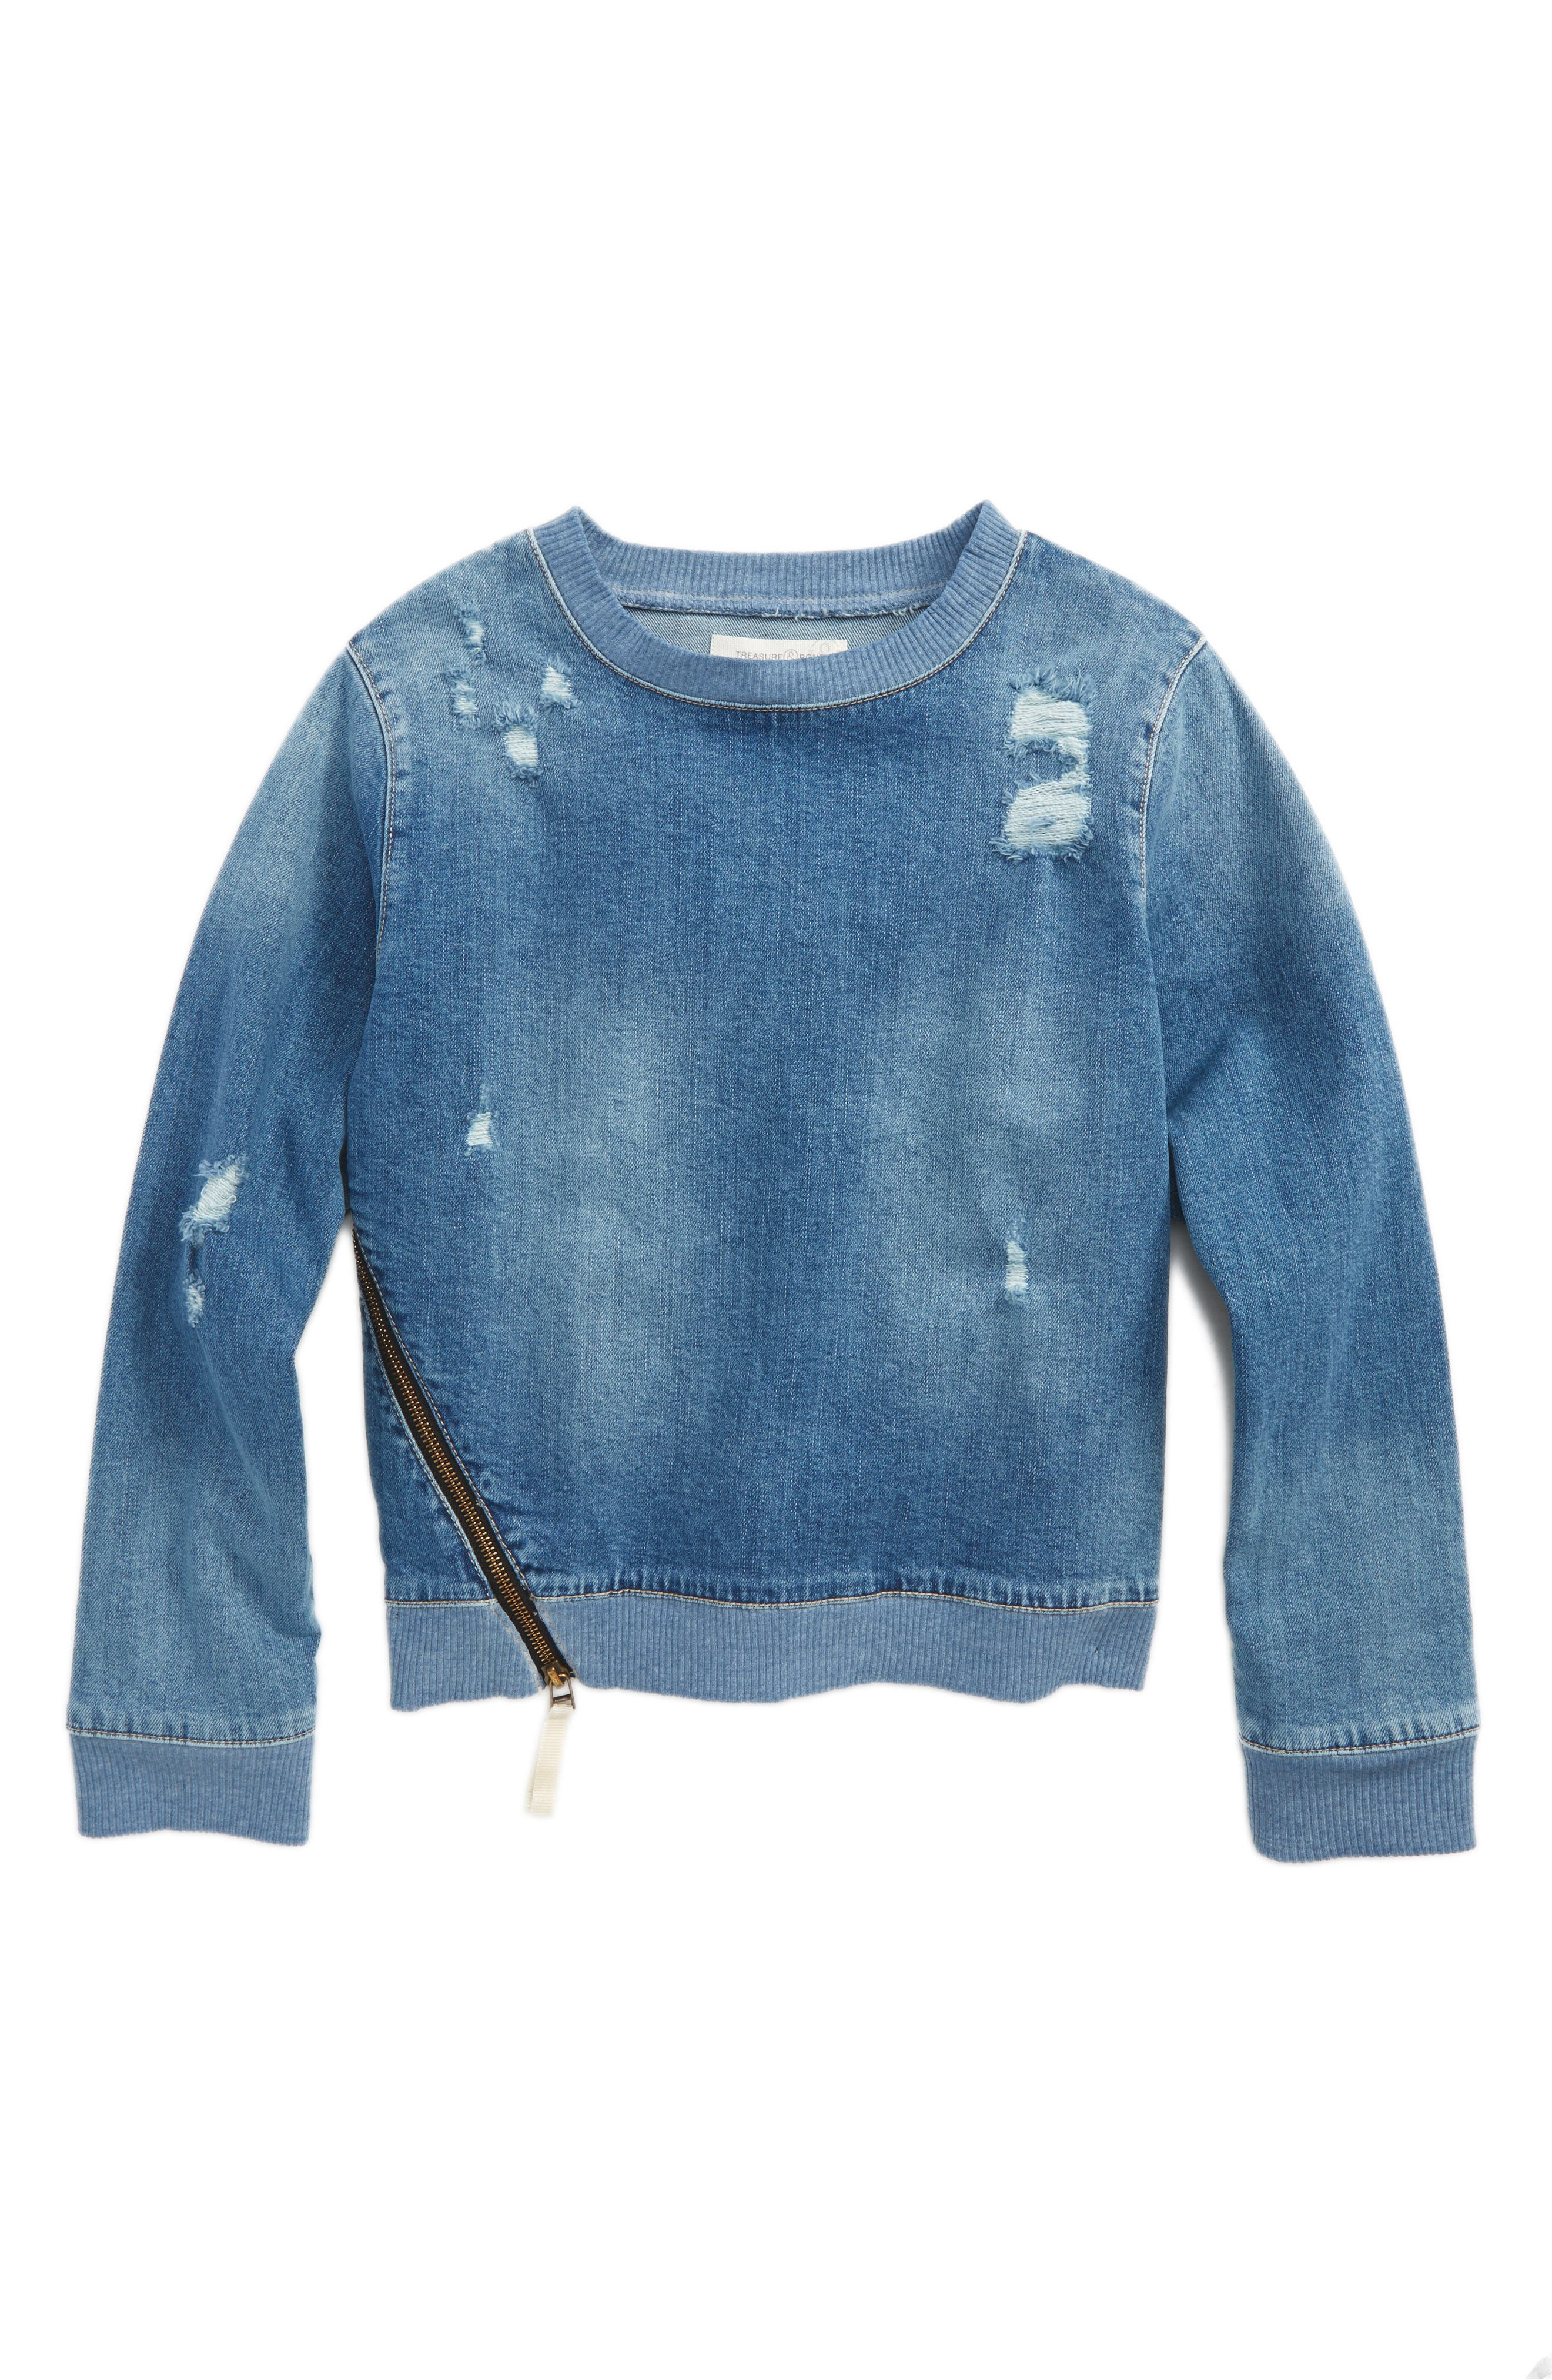 Alternate Image 1 Selected - Treasure & Bond Denim Sweatshirt (Big Girls)